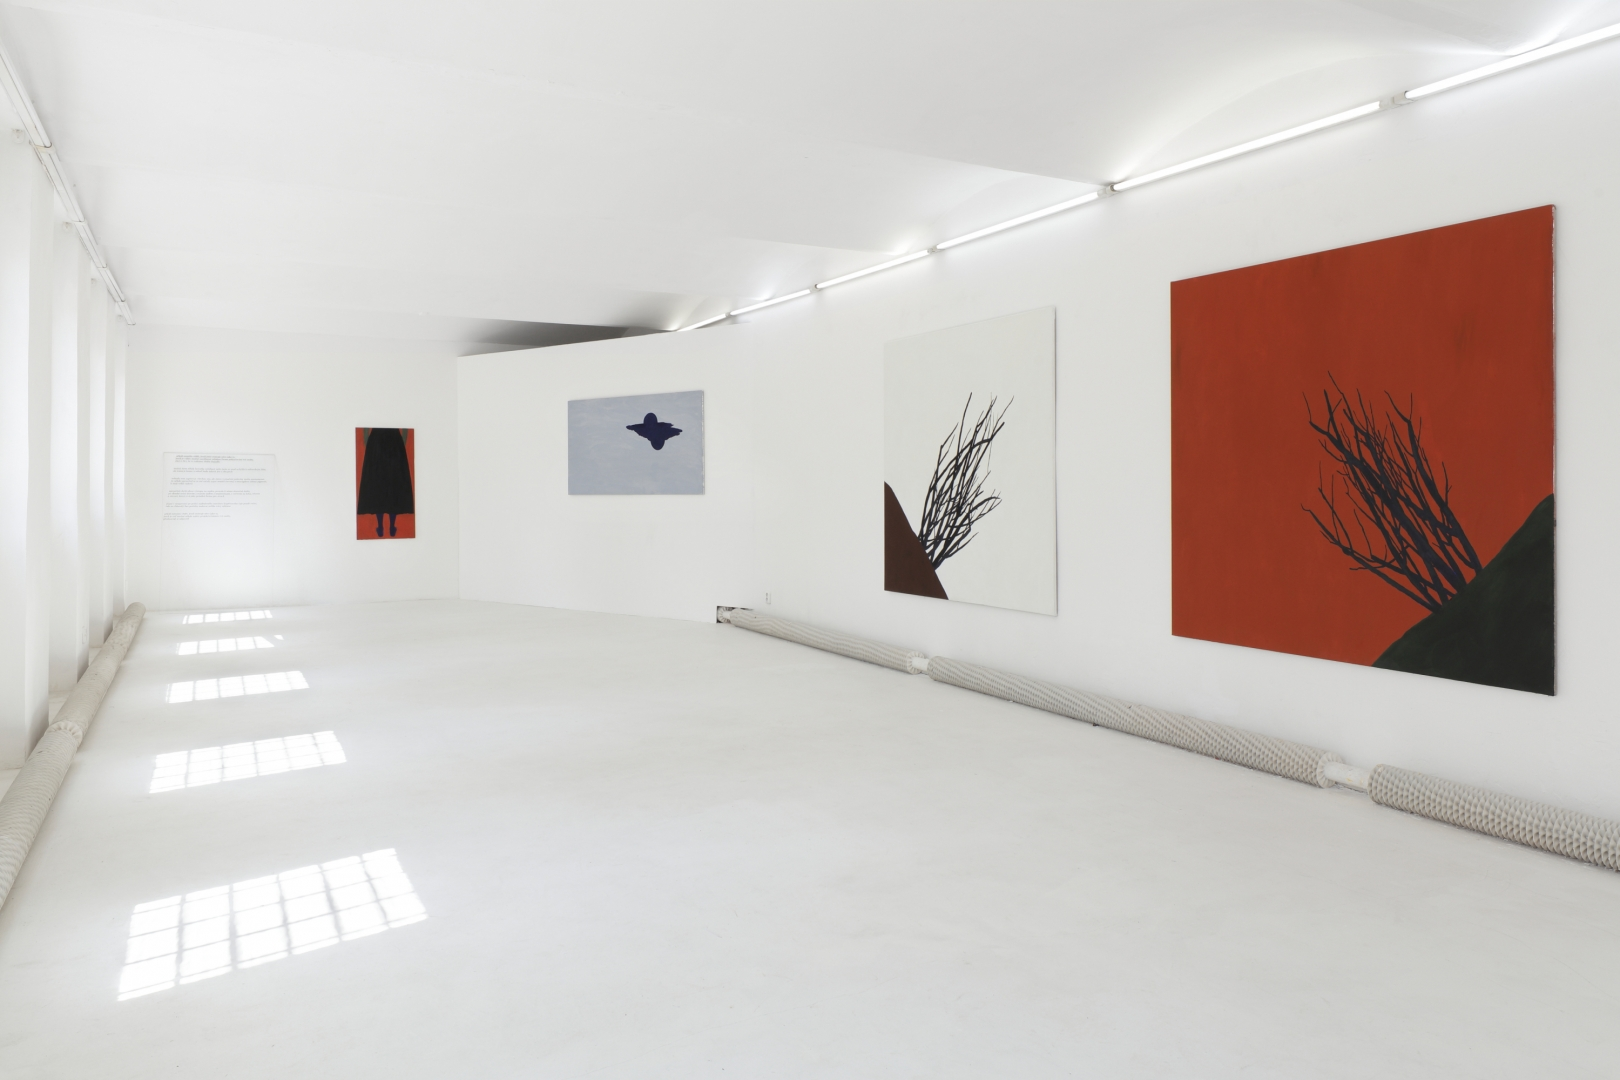 Installation view / pohled do instalace